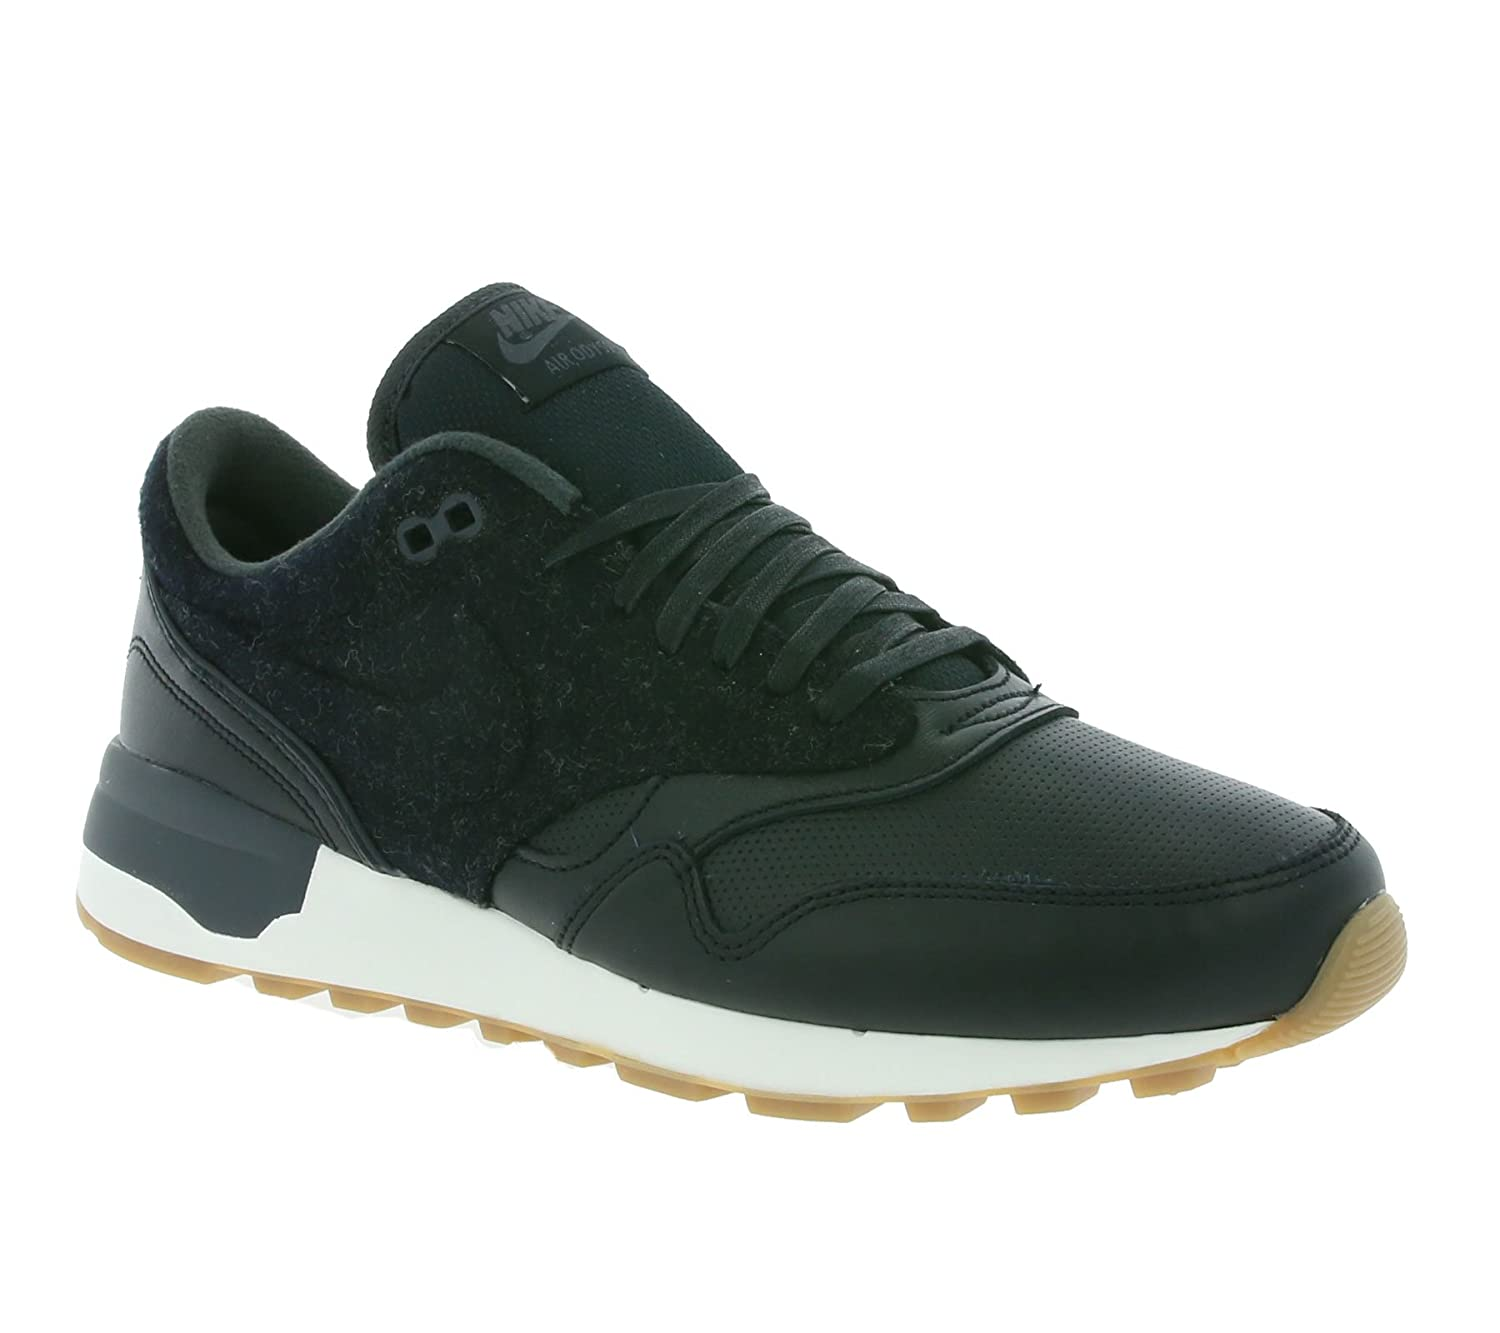 huge selection of 47ec8 0c4c8 Nike 806811-001 Scarpe da Fitness Uomo: Amazon.it: Scarpe e borse